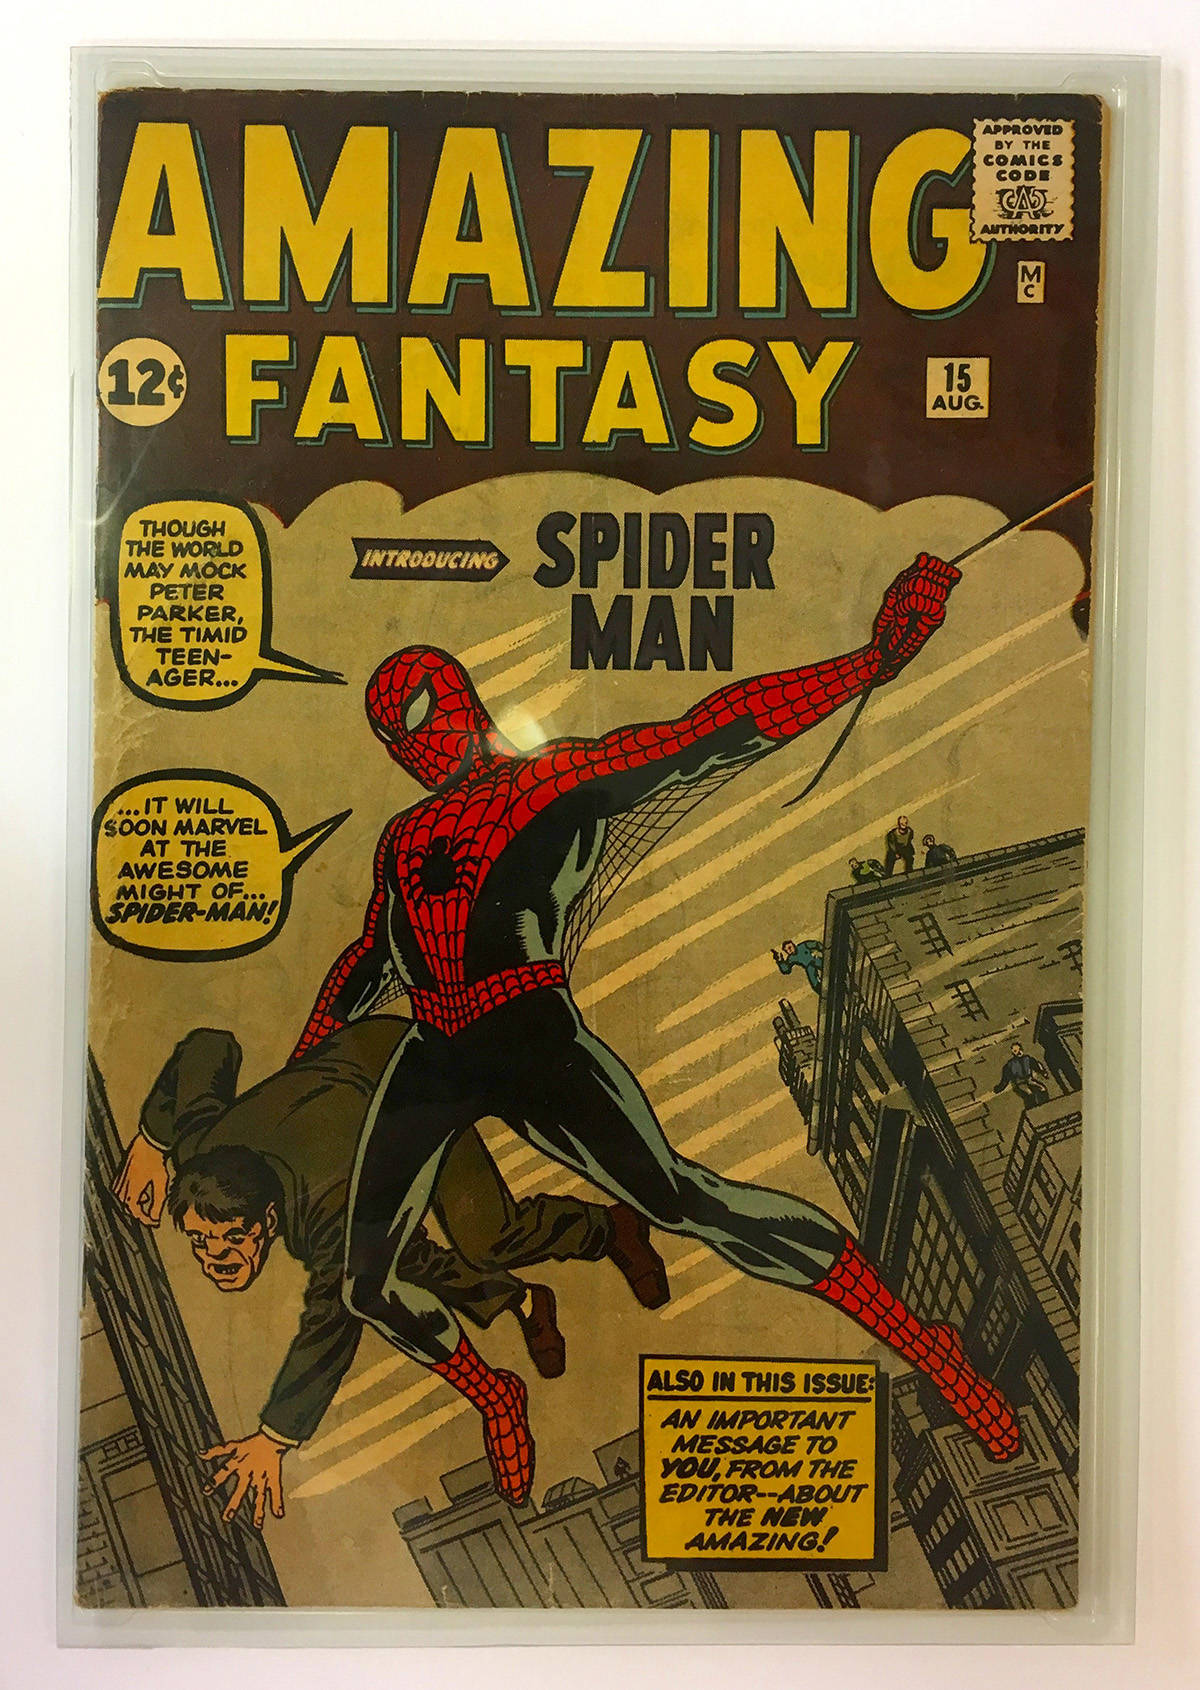 This first edition of the Amazing Fantasy #15 printed in 1962 is written by Stan Lee and illustrated by Steve Ditko, with a cover design by Jack Kirby. It introduces Peter Parker and Spider-Man to the Marvel Universe. This comic book could be worth up to $1 million. (Photo courtesy of Gareth Gaudin)